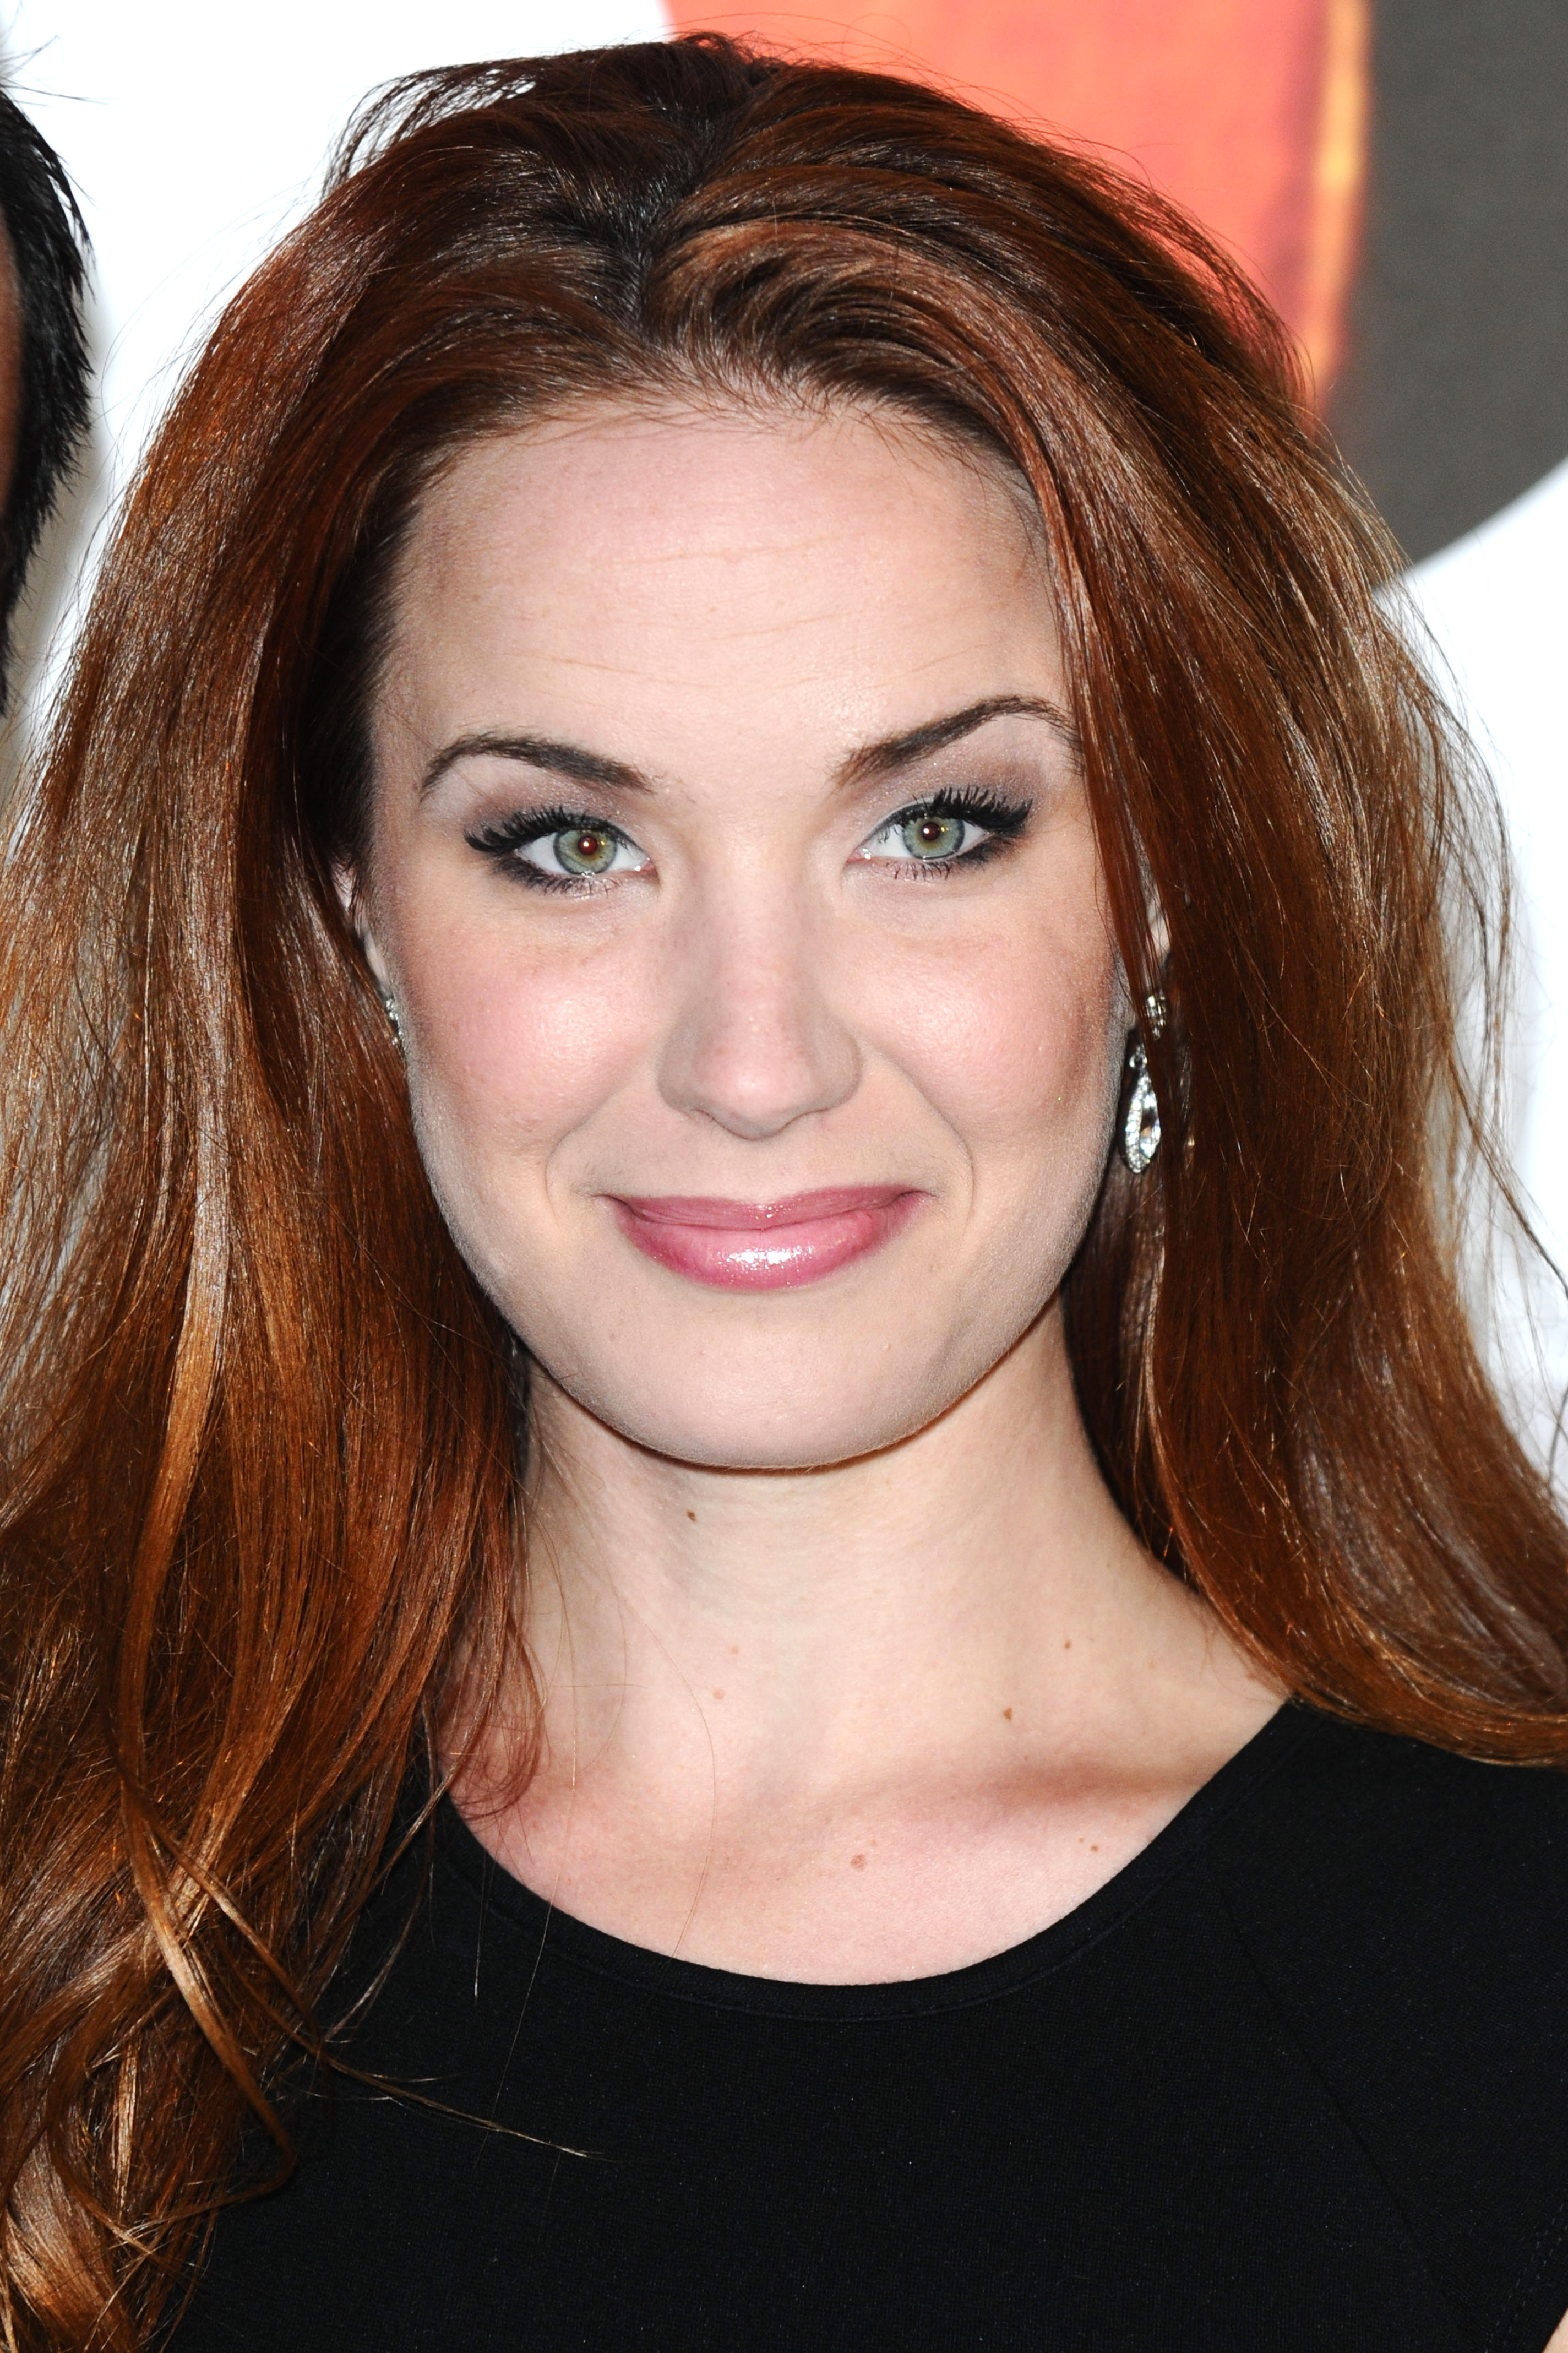 sierra boggess vocal rangesierra boggess phantom of the opera, sierra boggess & ramin karimloo, sierra boggess voice type, sierra boggess youtube, sierra boggess tickets, sierra boggess vocal range, sierra boggess princeton, sierra boggess events, sierra boggess les miserables, sierra boggess angel of music, sierra boggess album, sierra boggess part of your world, sierra boggess engaged, sierra boggess instagram, sierra boggess wiki, sierra boggess tumblr, sierra boggess the lusty month of may, sierra boggess think of me